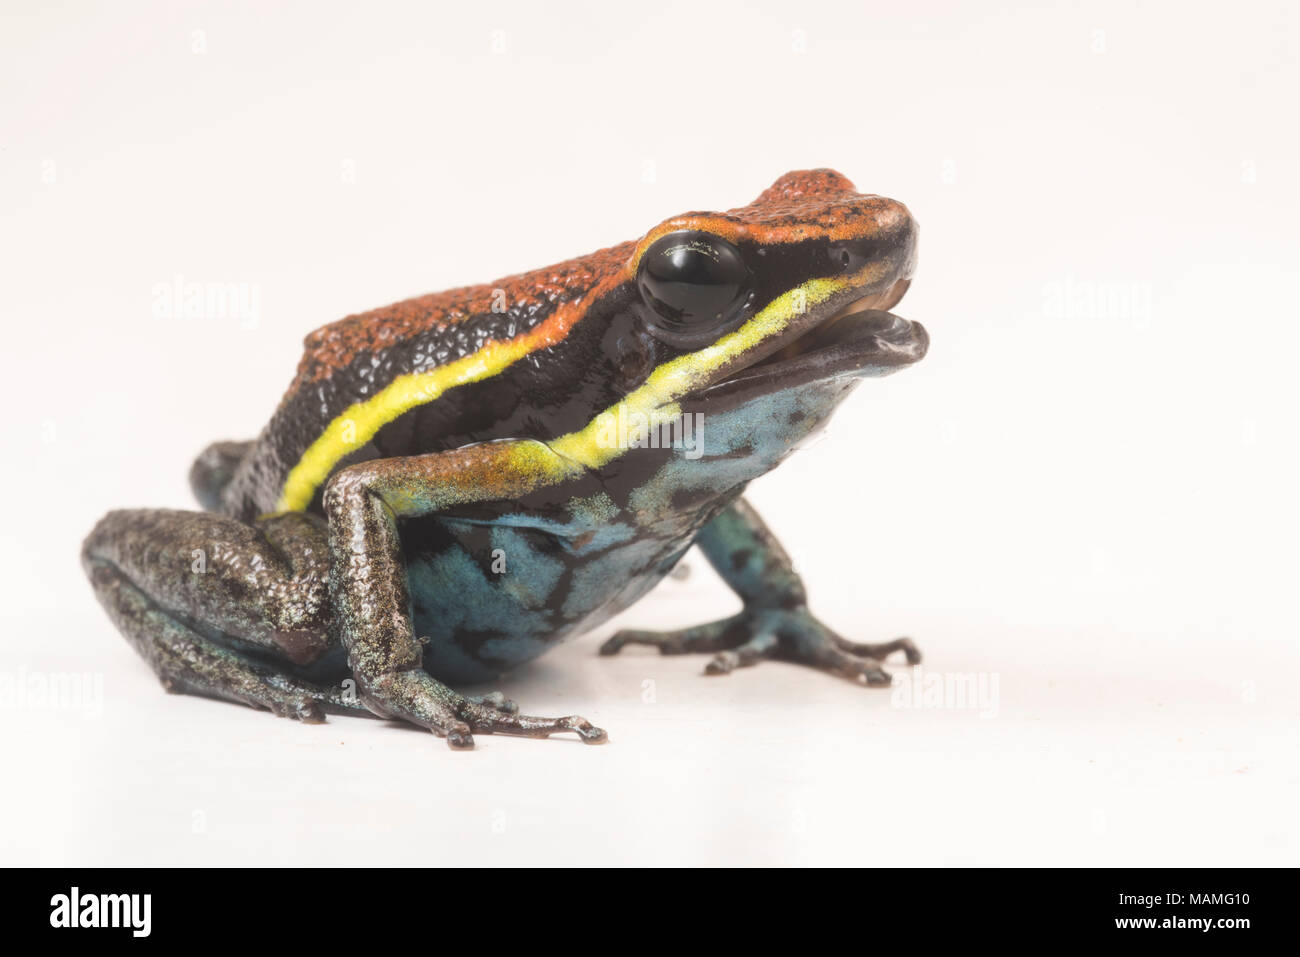 The cainarachi poison frog (Ameerega cainarachi) so called because it is only found in the Cainarachi valley of Peru. Here shown pictured on white. - Stock Image